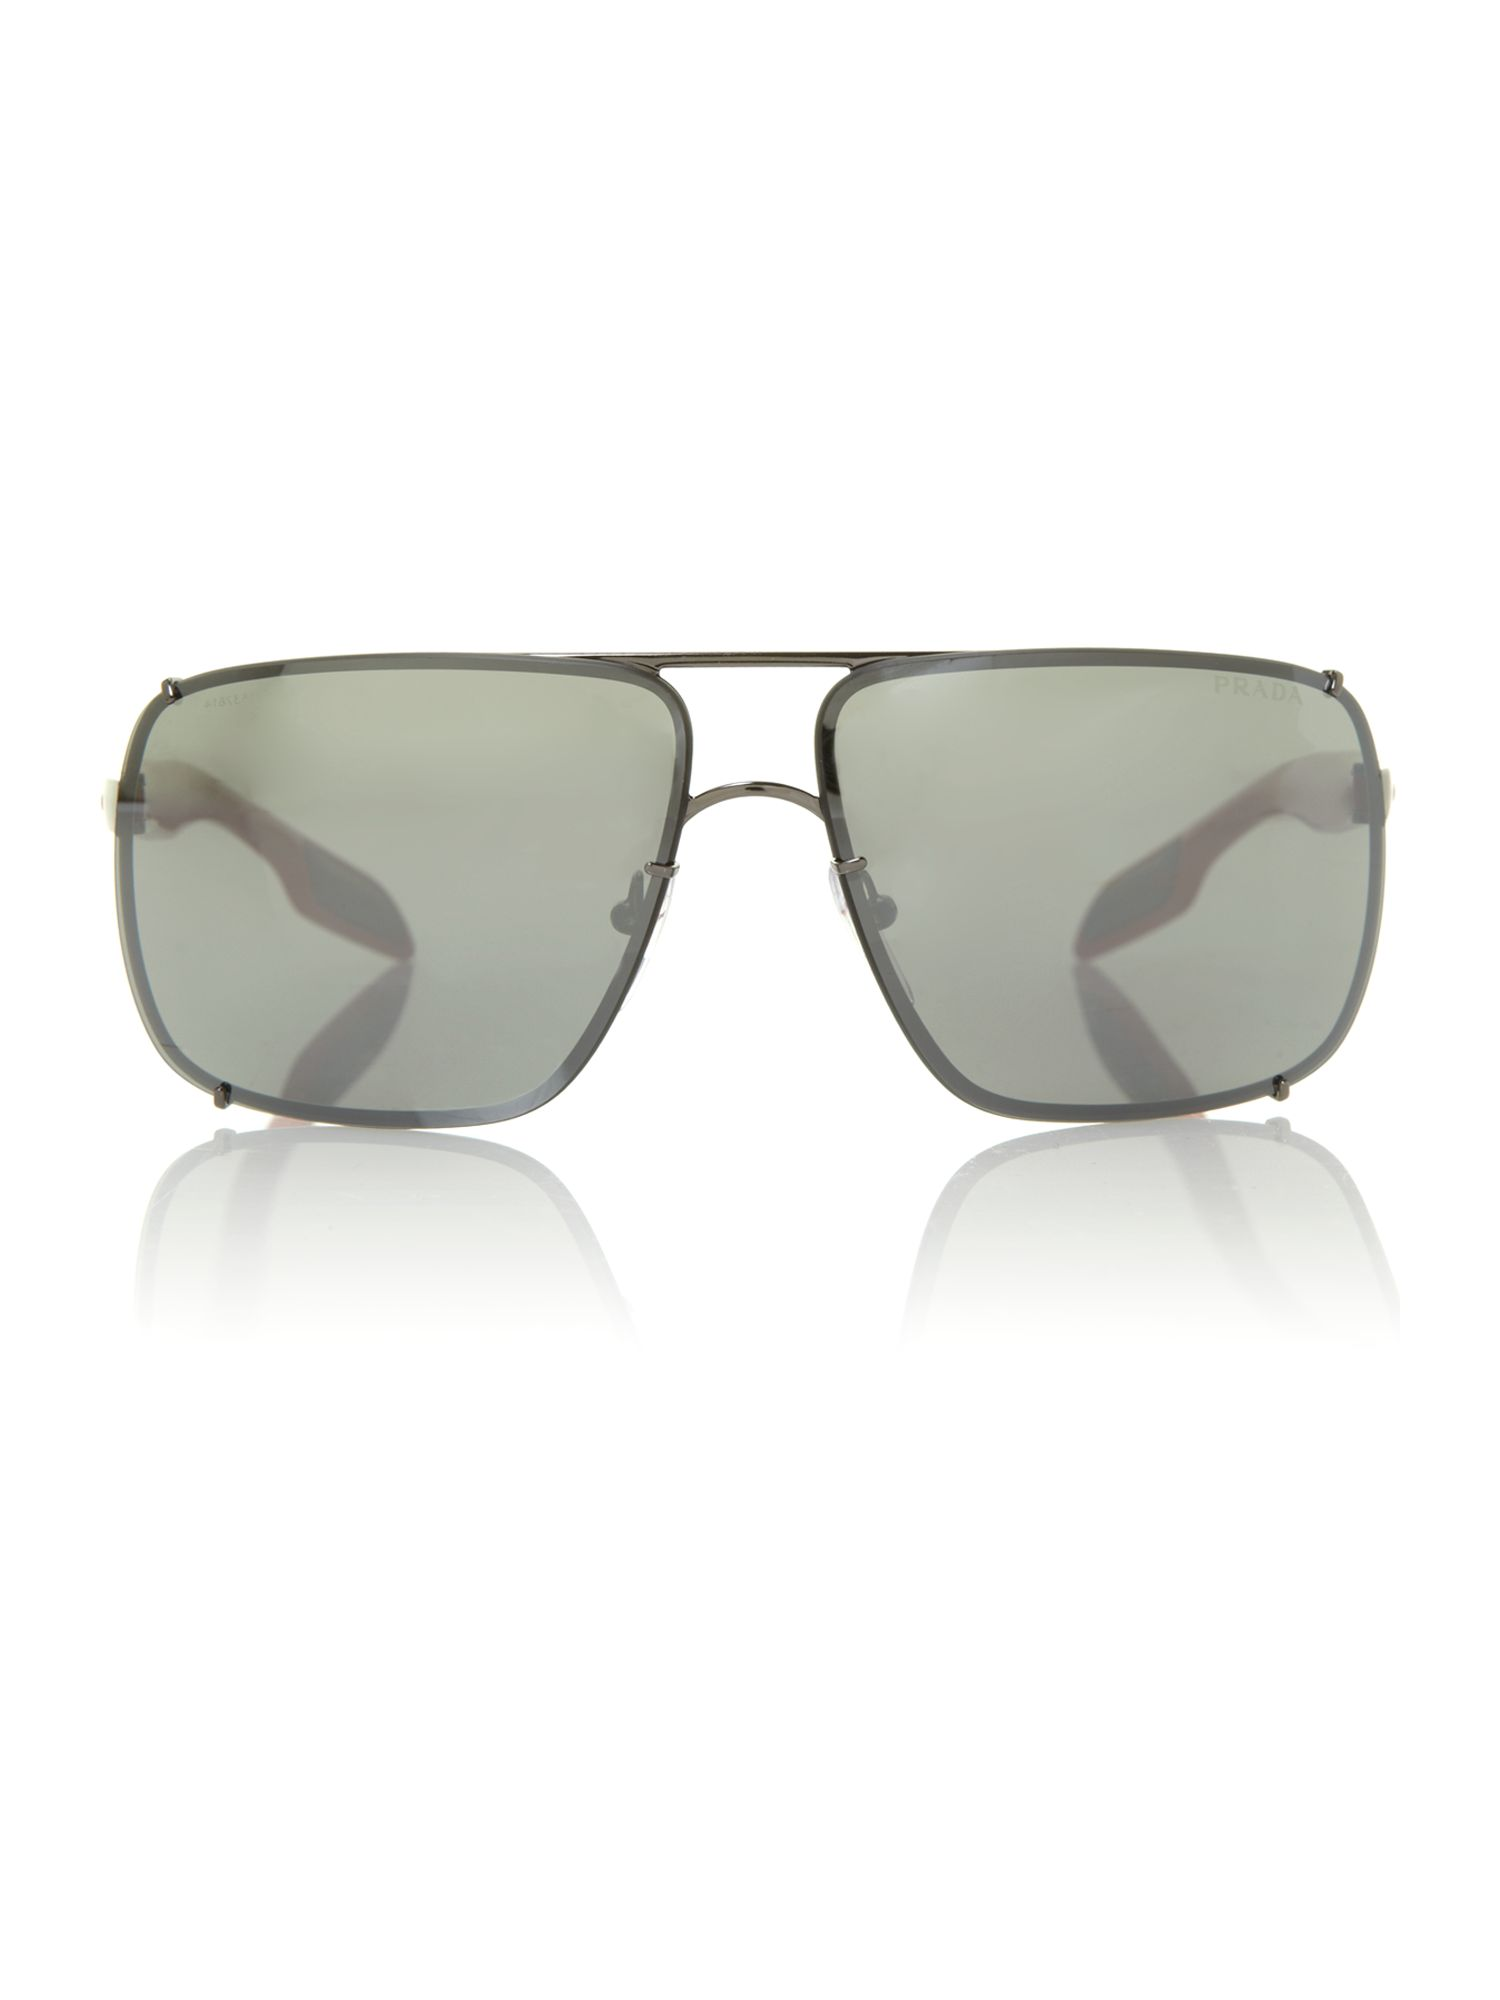 Men`s gunmetal square sunglasses